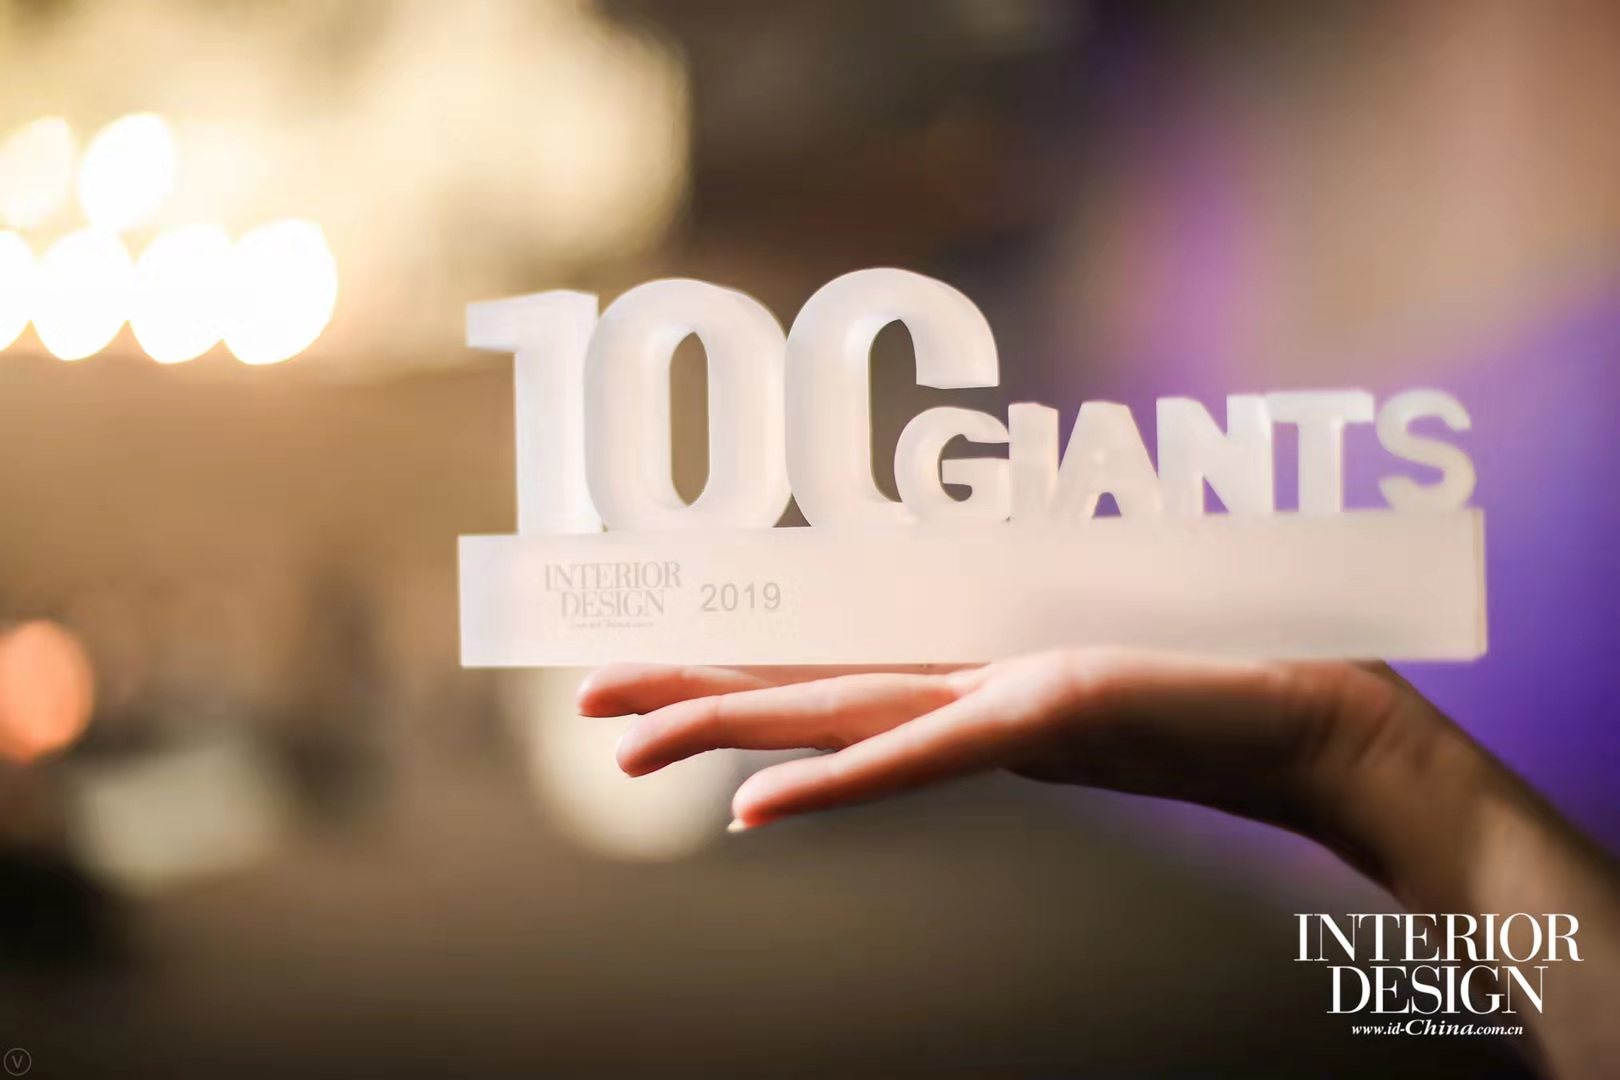 interior design top 100 giants 2019